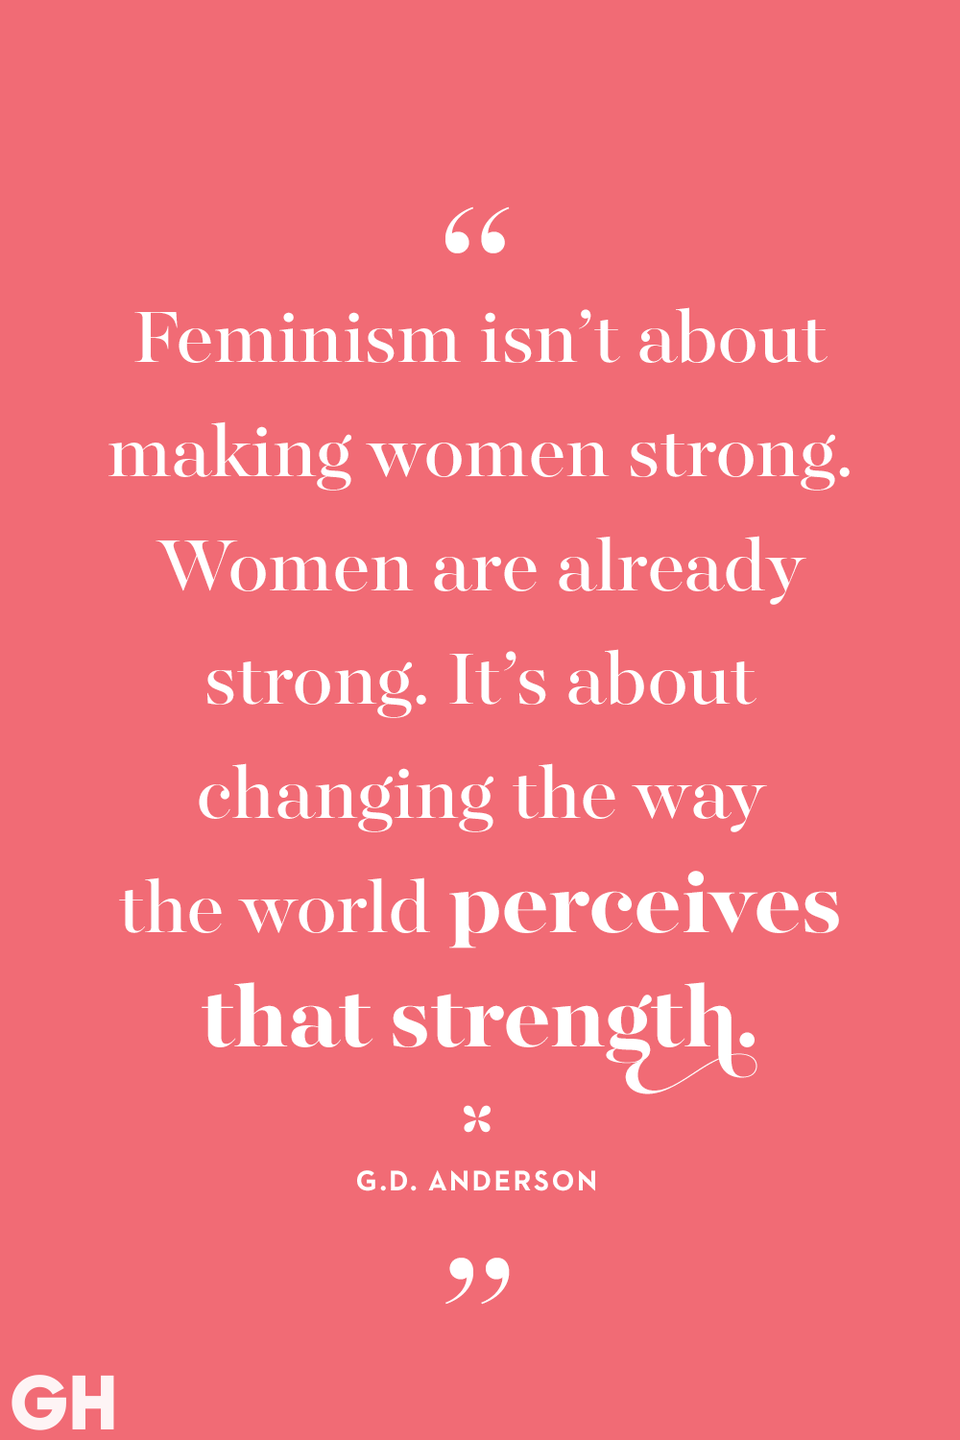 """<p>Feminism isn't about making women strong. Women are already strong. It's about changing the way the world perceives that strength.</p><p><strong>RELATED: </strong><a href=""""https://www.goodhousekeeping.com/life/entertainment/g29146524/best-podcasts-for-women/"""" rel=""""nofollow noopener"""" target=""""_blank"""" data-ylk=""""slk:21 Coolest Podcasts for Women to Share With Their Best Friends Right Now"""" class=""""link rapid-noclick-resp"""">21 Coolest Podcasts for Women to Share With Their Best Friends Right Now</a></p>"""